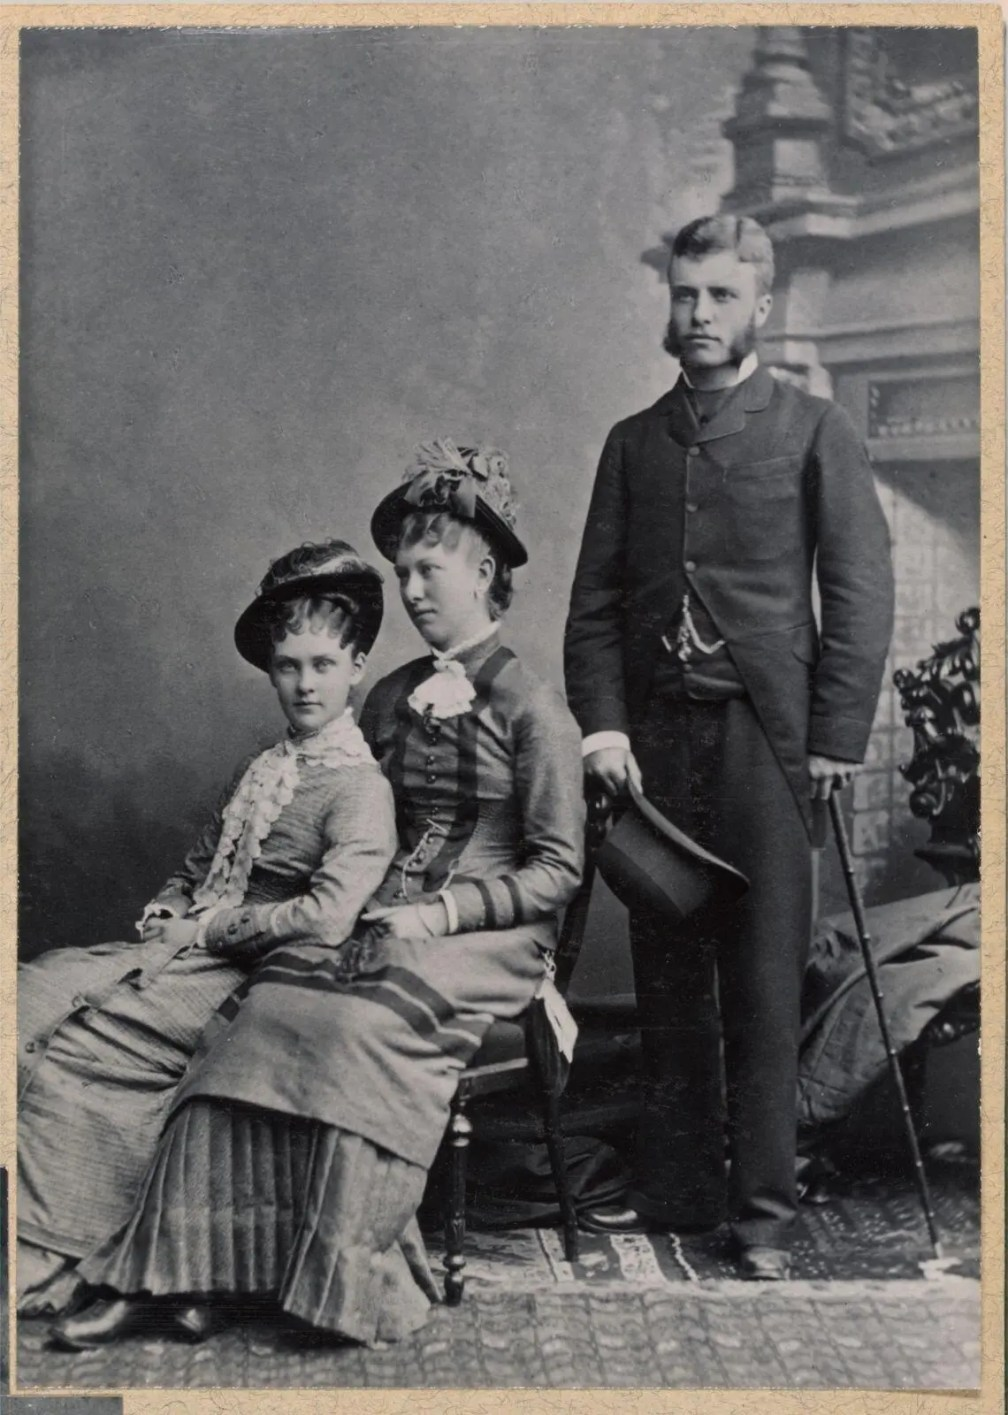 A formal portrait of (from left to right) Alice Hathaway Lee, her cousin Rose Saltonstall, and Theodore Roosevelt.